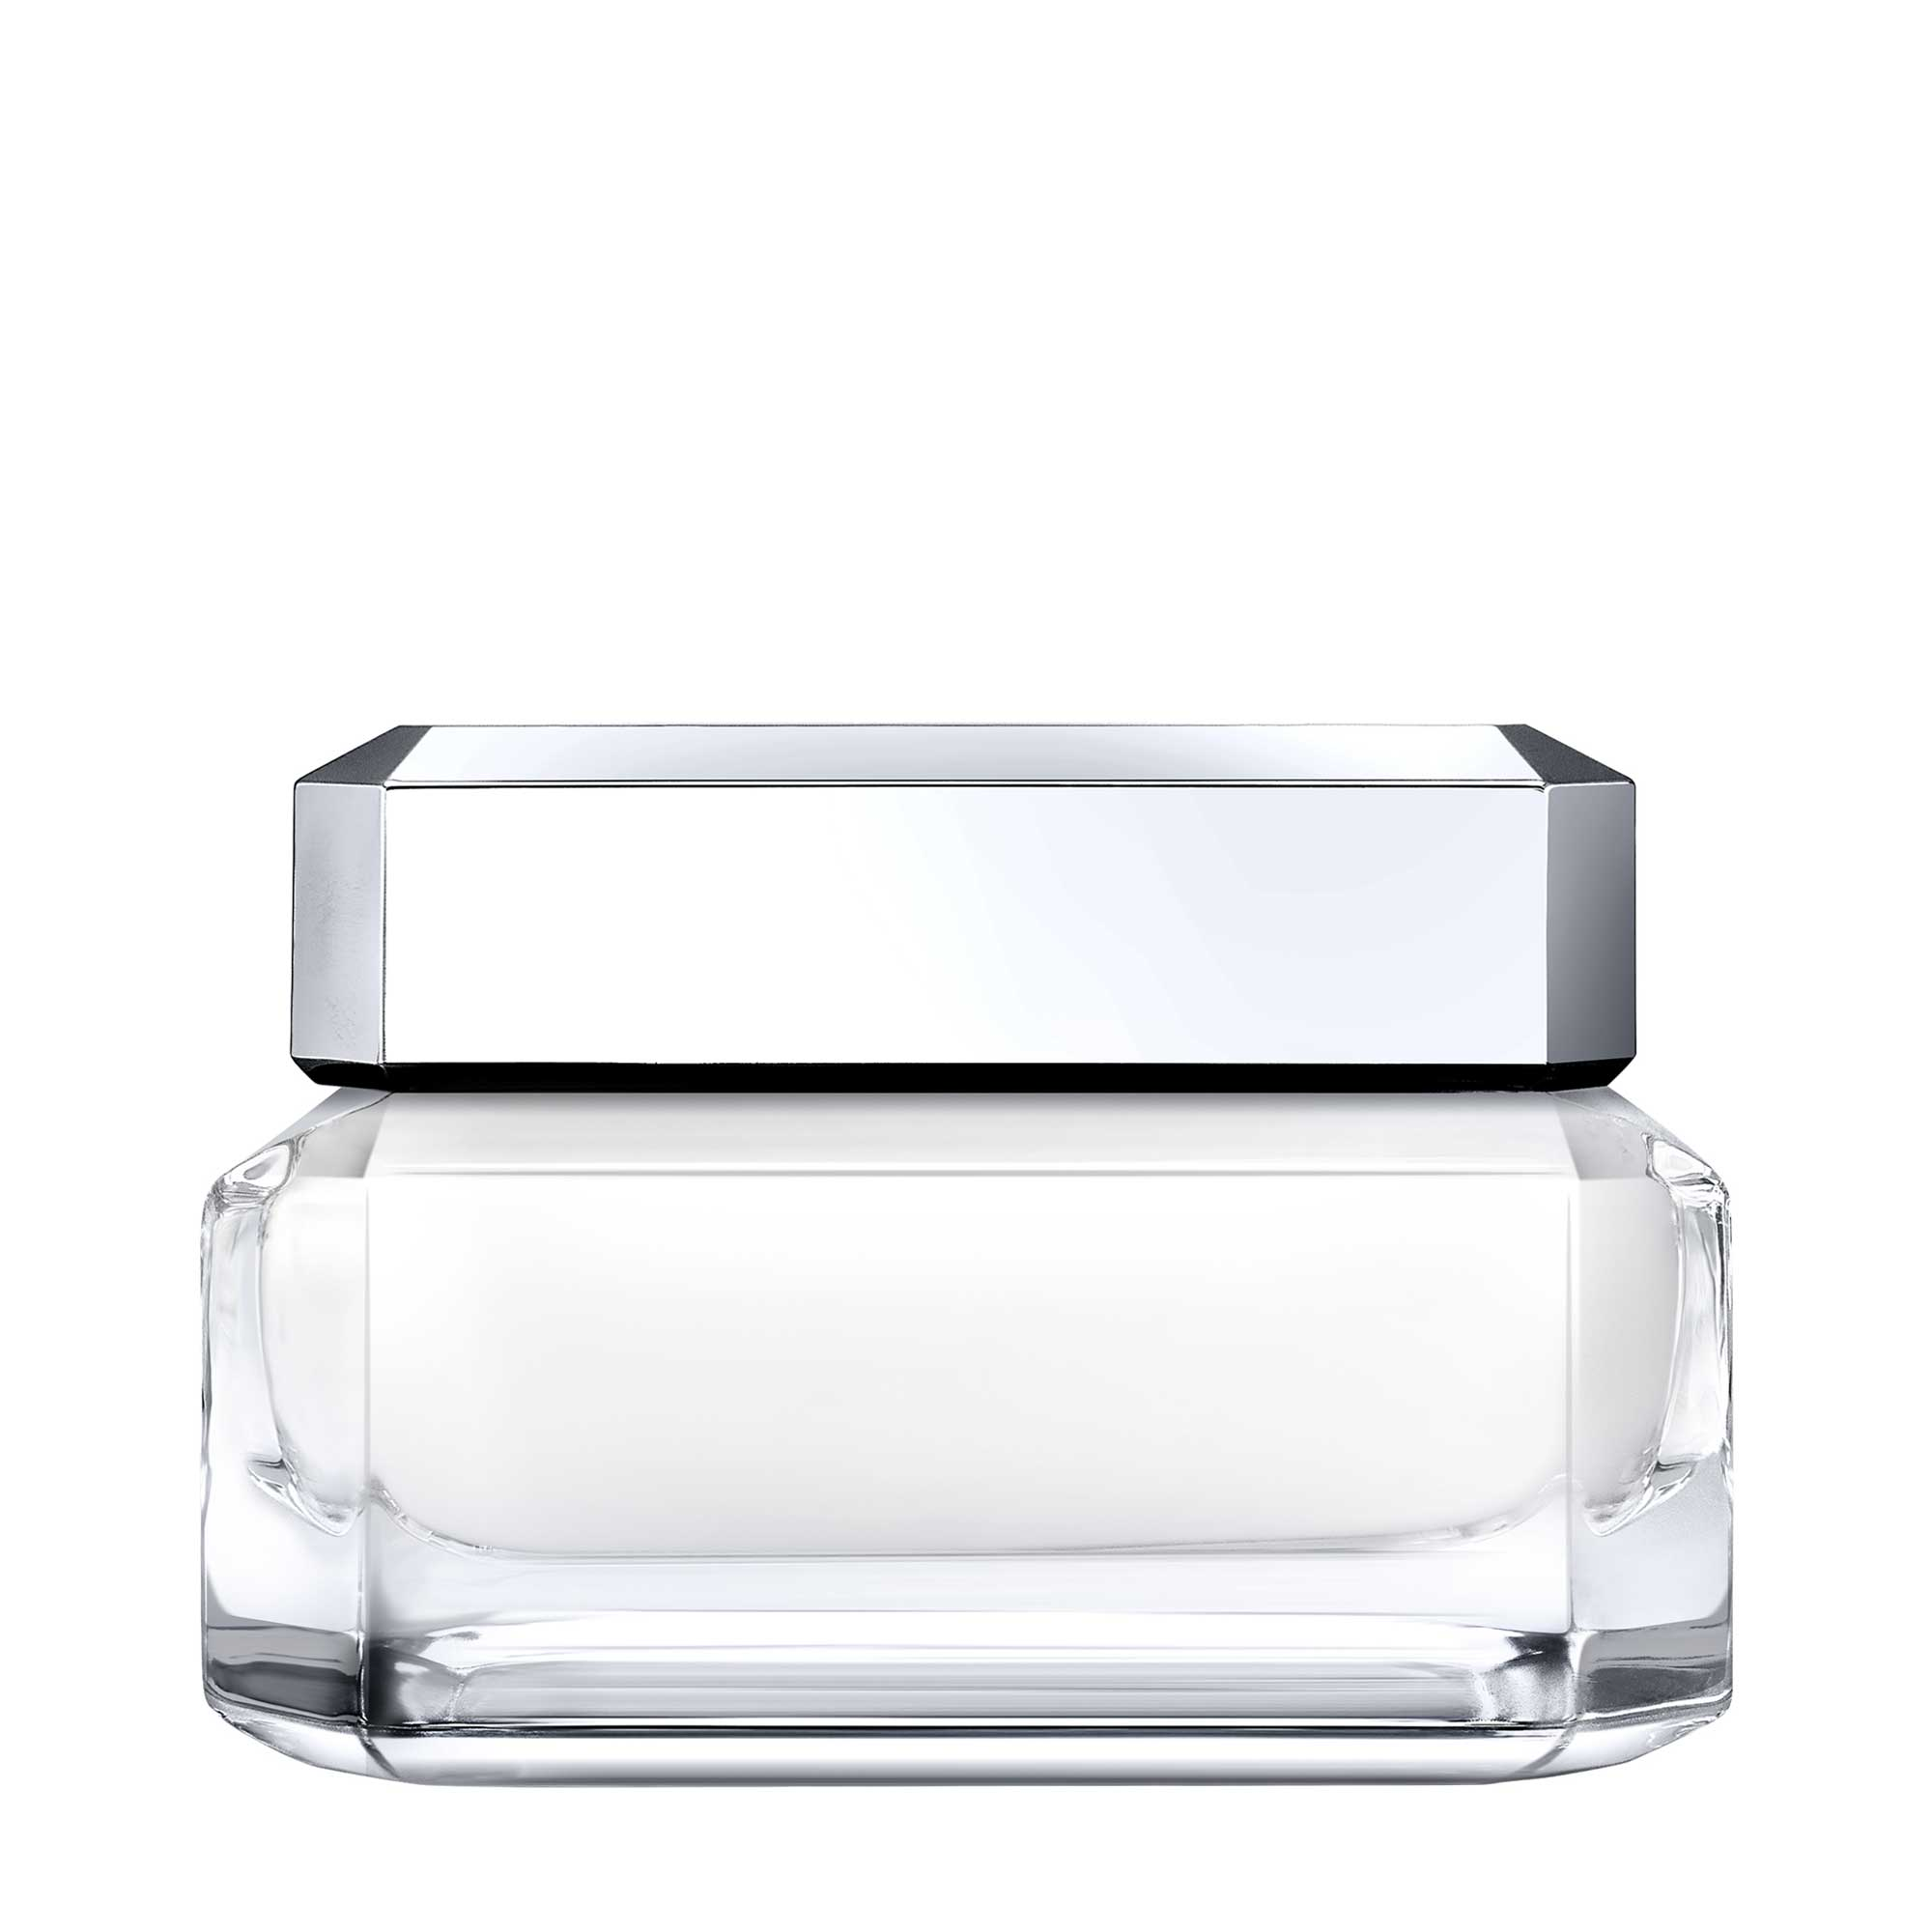 Tiffany & Co. Perfumed Body Cream - Tiffany & Co.